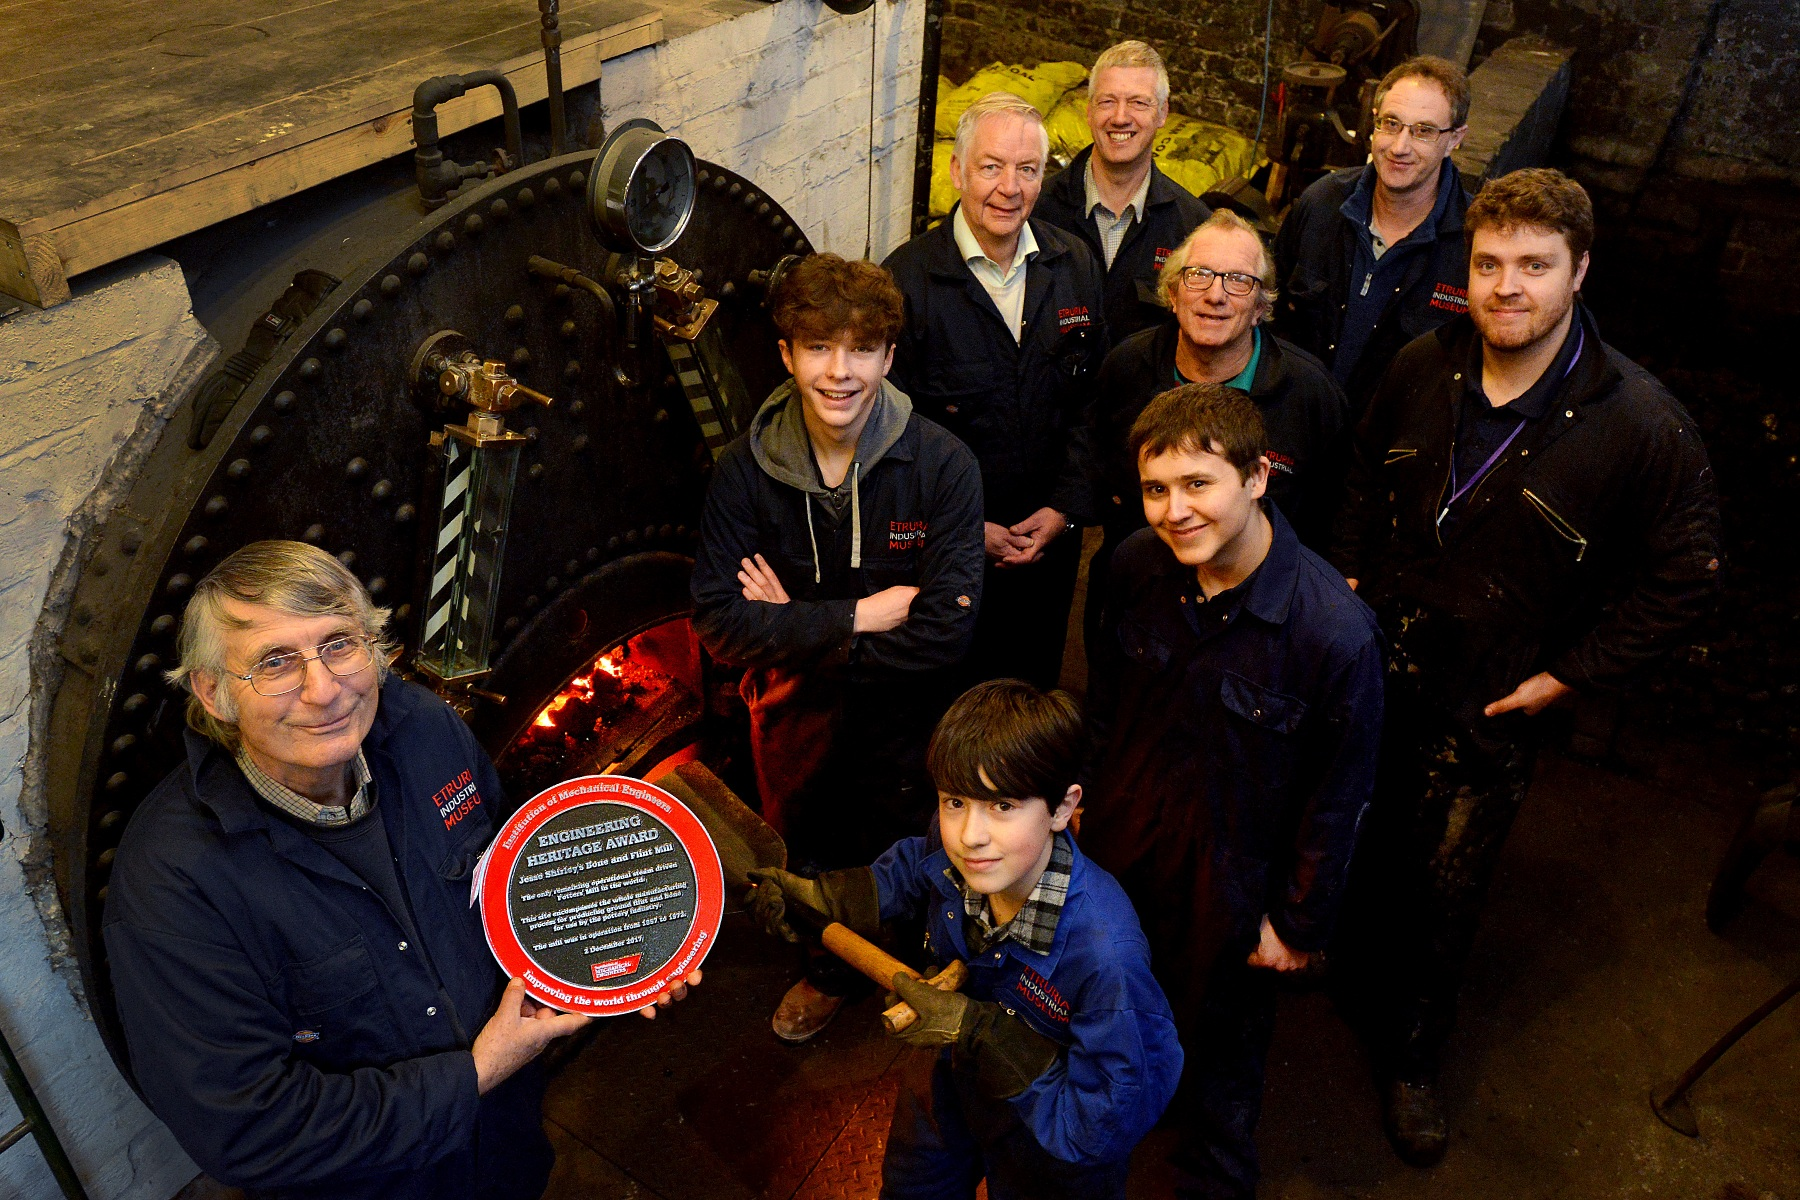 VOLUNTEEERS RECEIVING IMechE HERITAGEAWARD in 2017